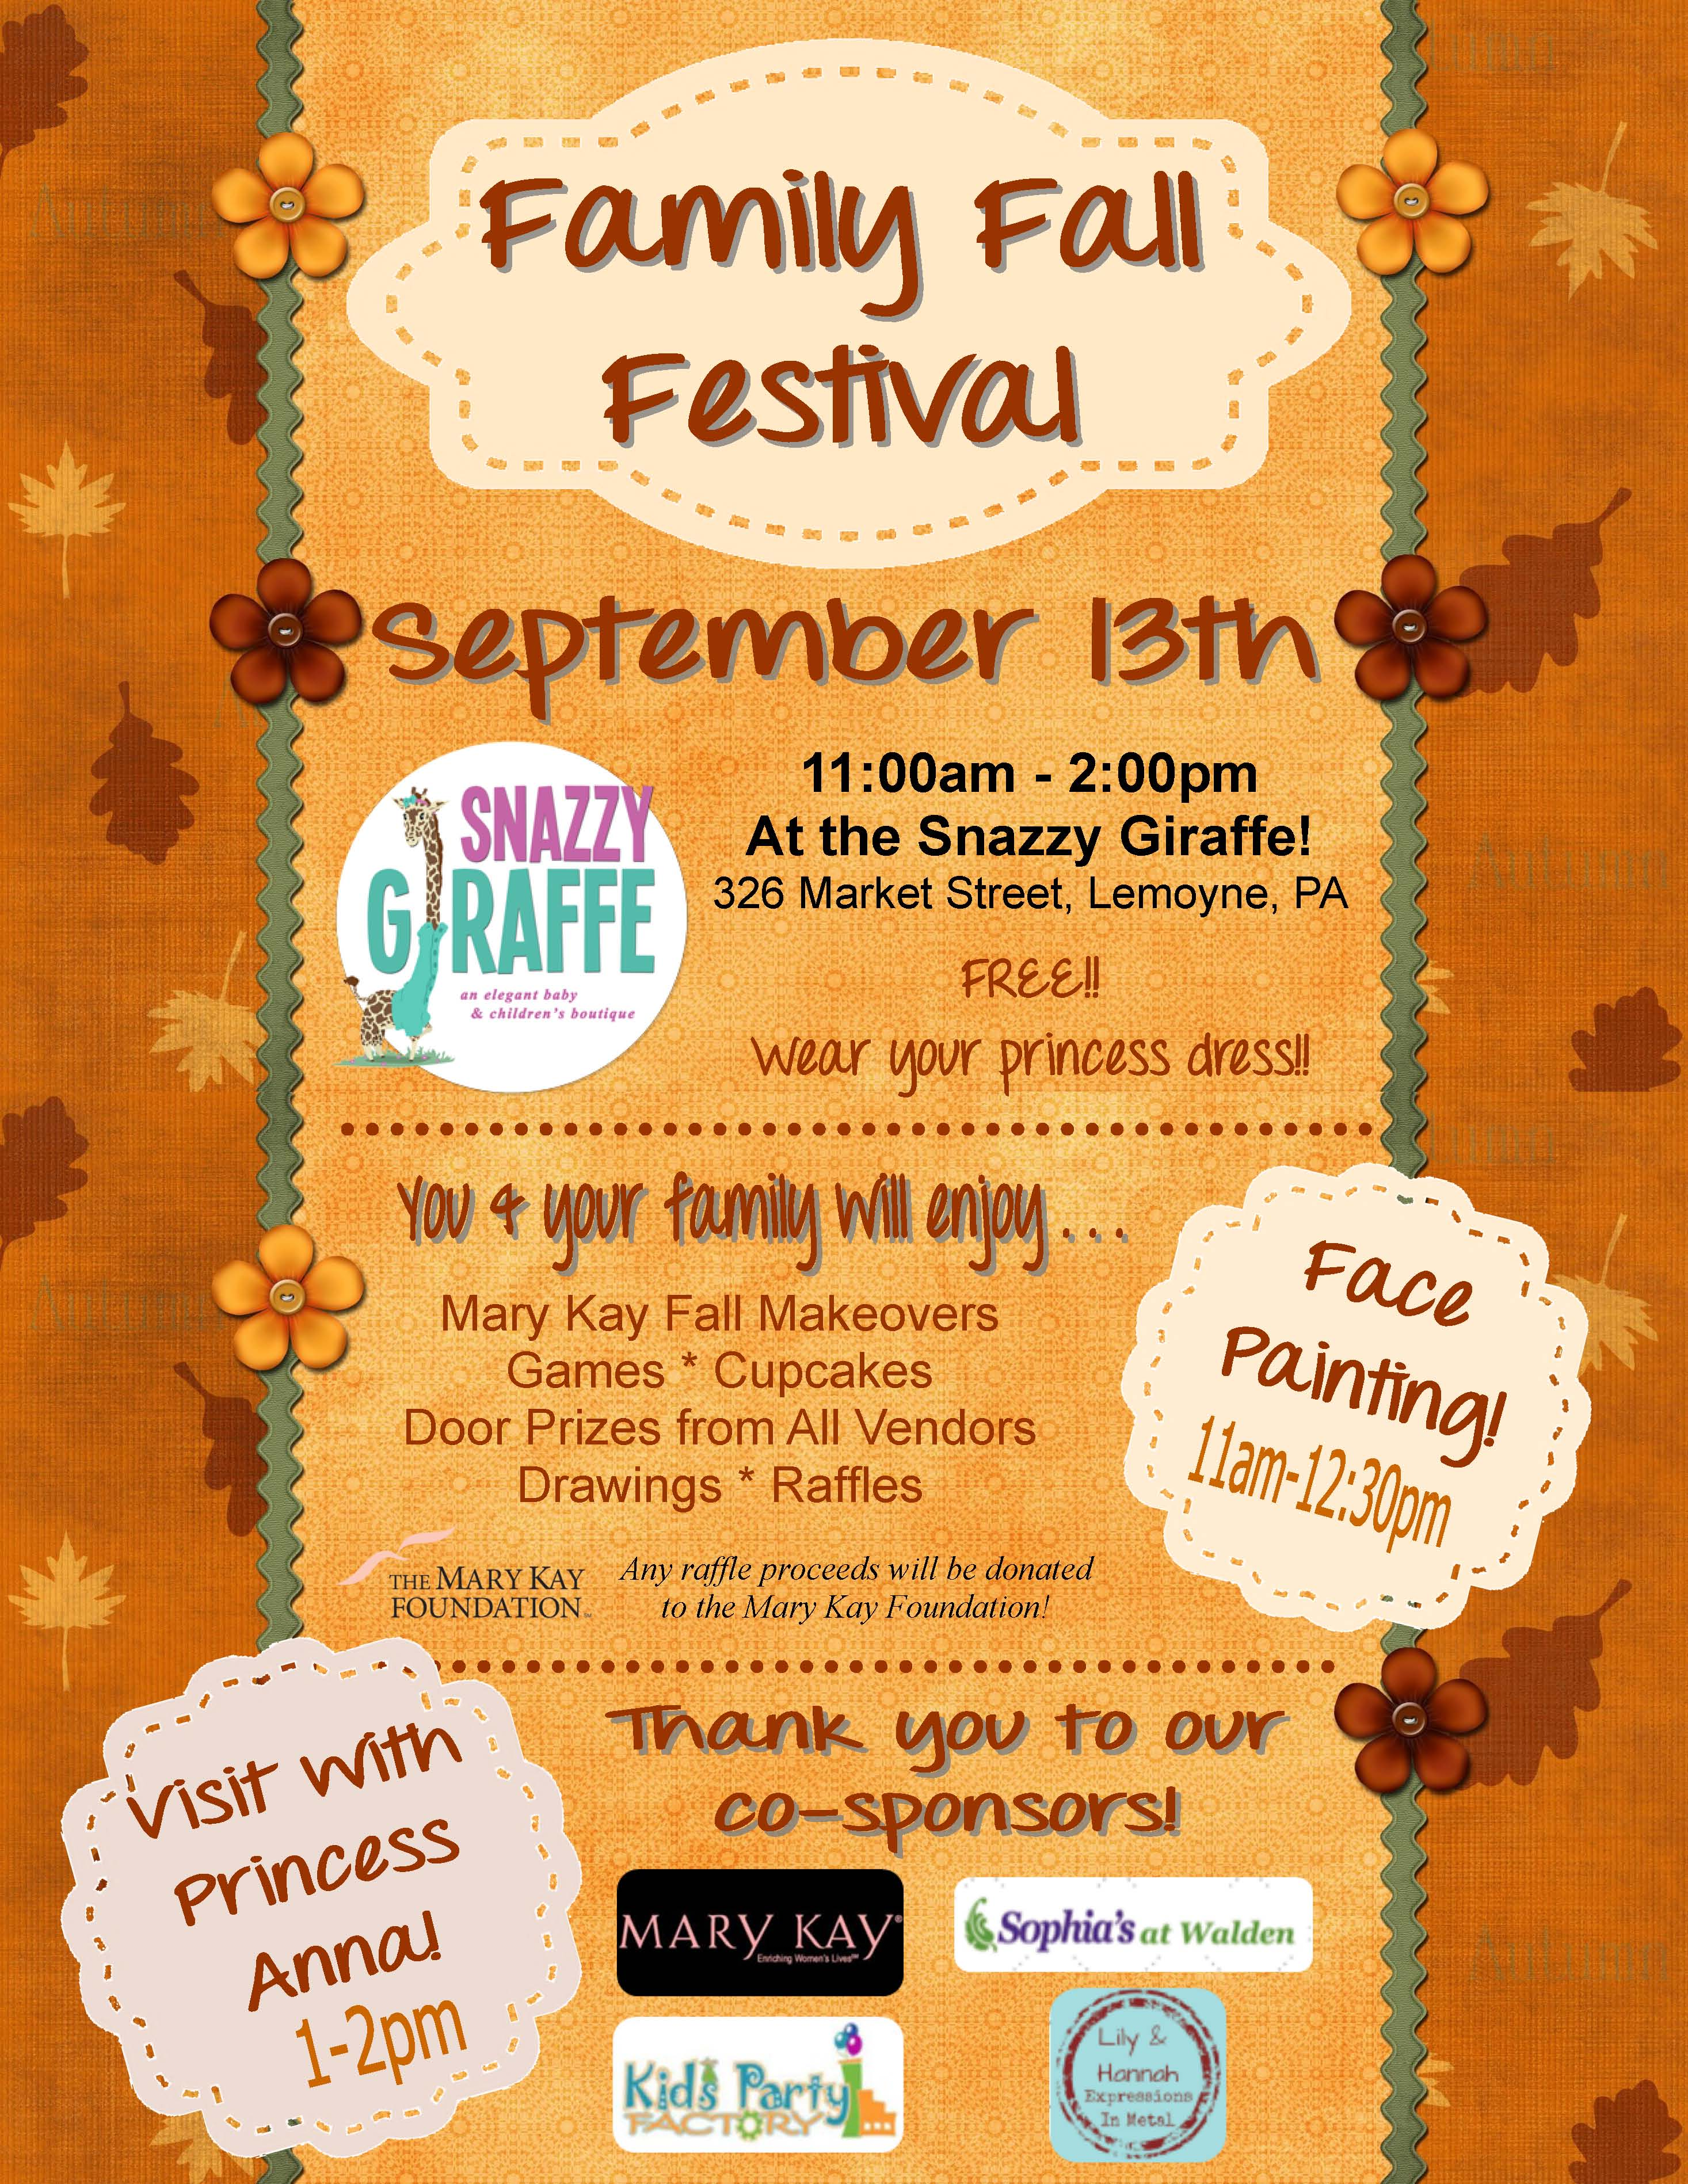 Family Fall Festival on Saturday, Sept. 13th!